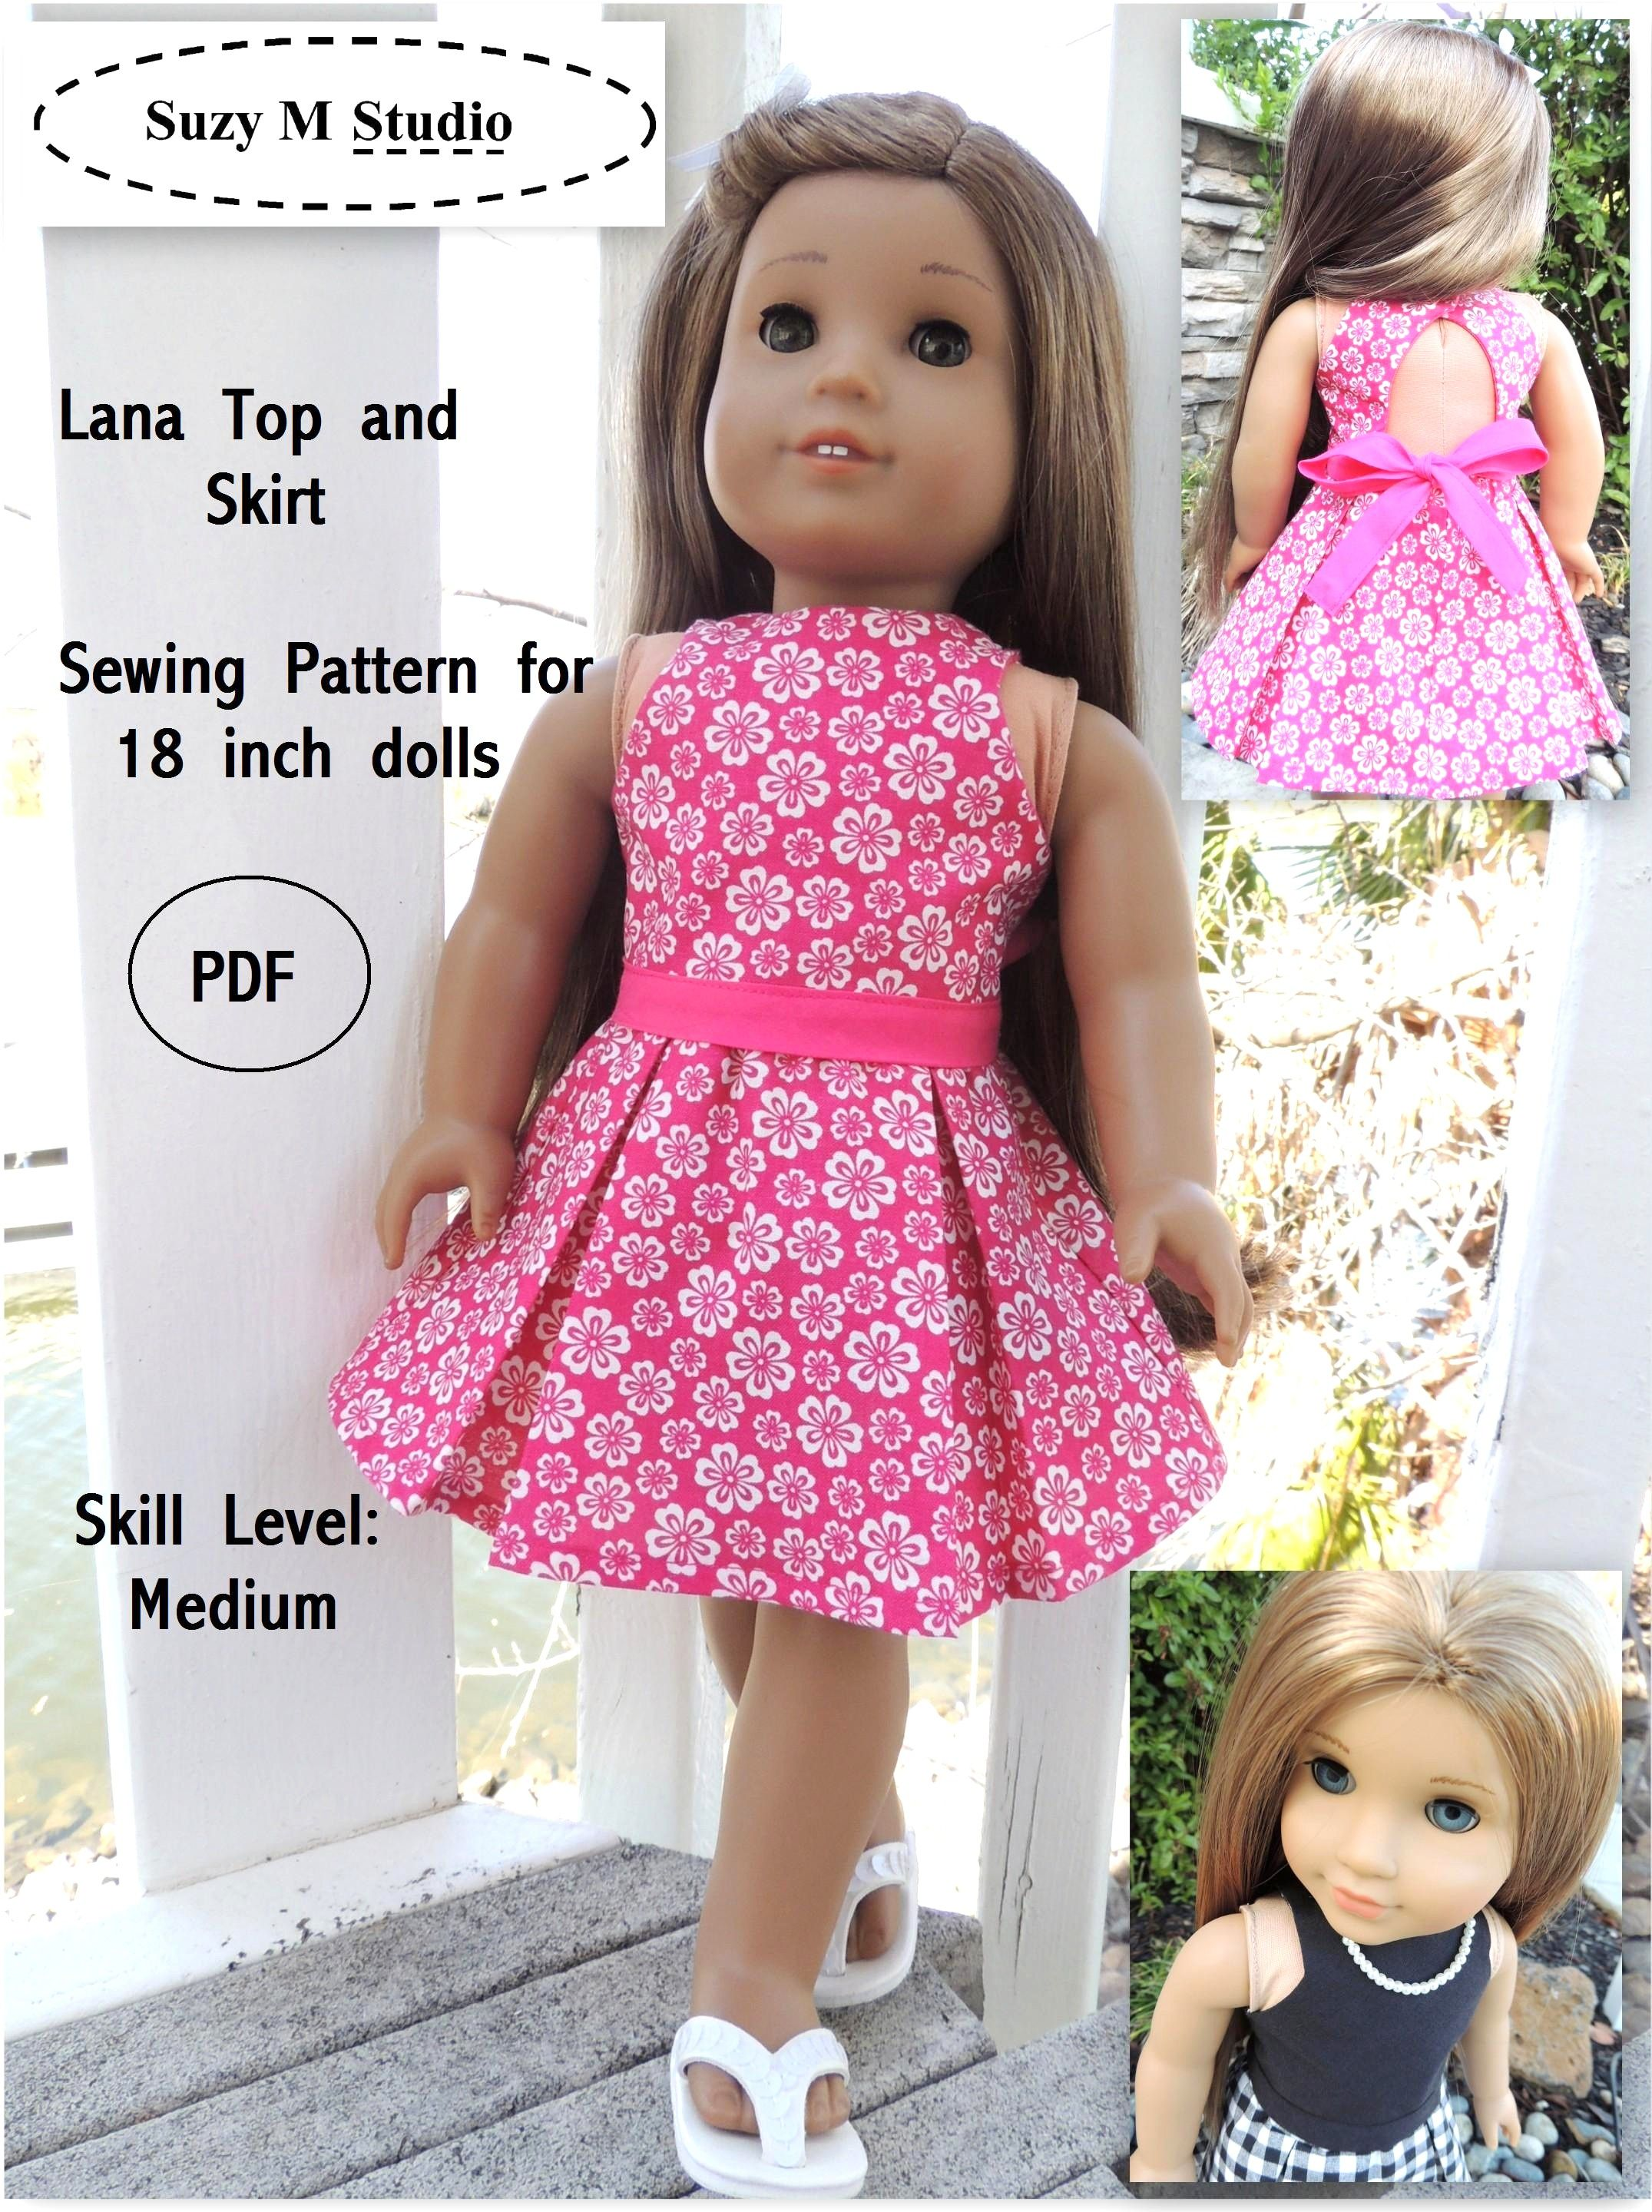 18 Inch Doll Dress Patterns : dress, patterns, Tutorial, SuzyMStudio, American, Clothes, Patterns,, Girl,, Patterns